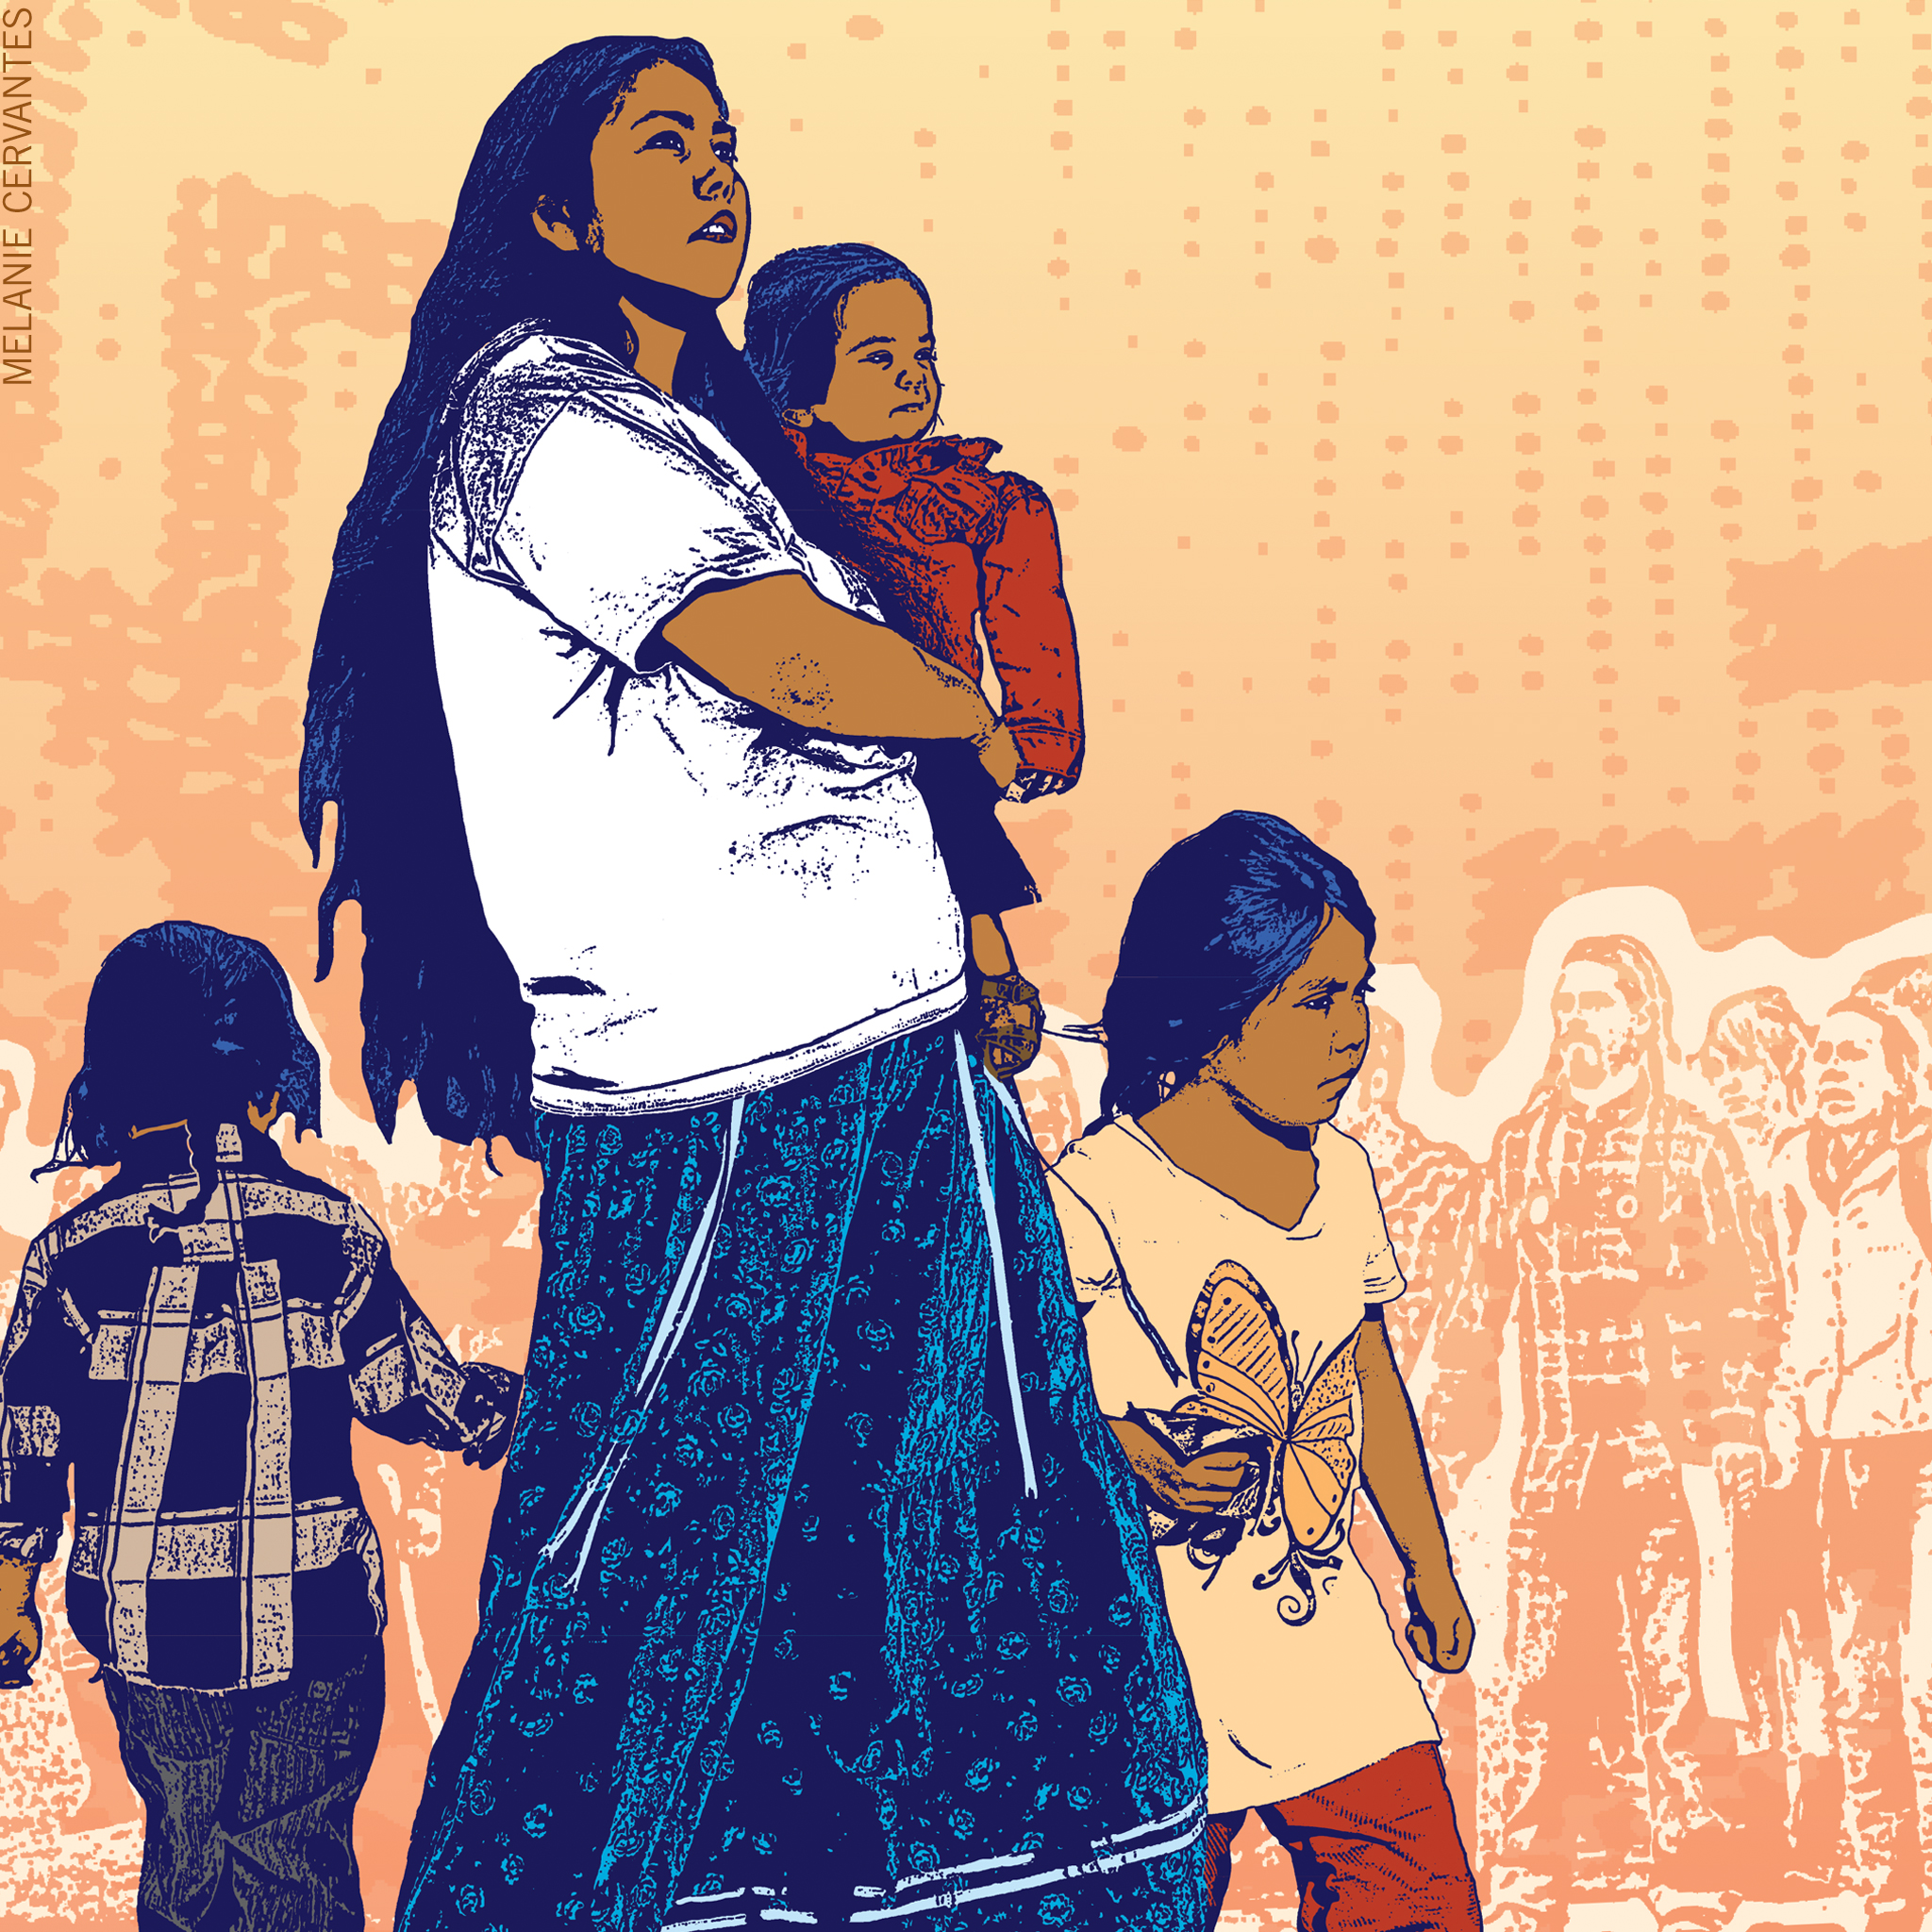 Mamas Day. Illustration showing Indigenous mom with small children.